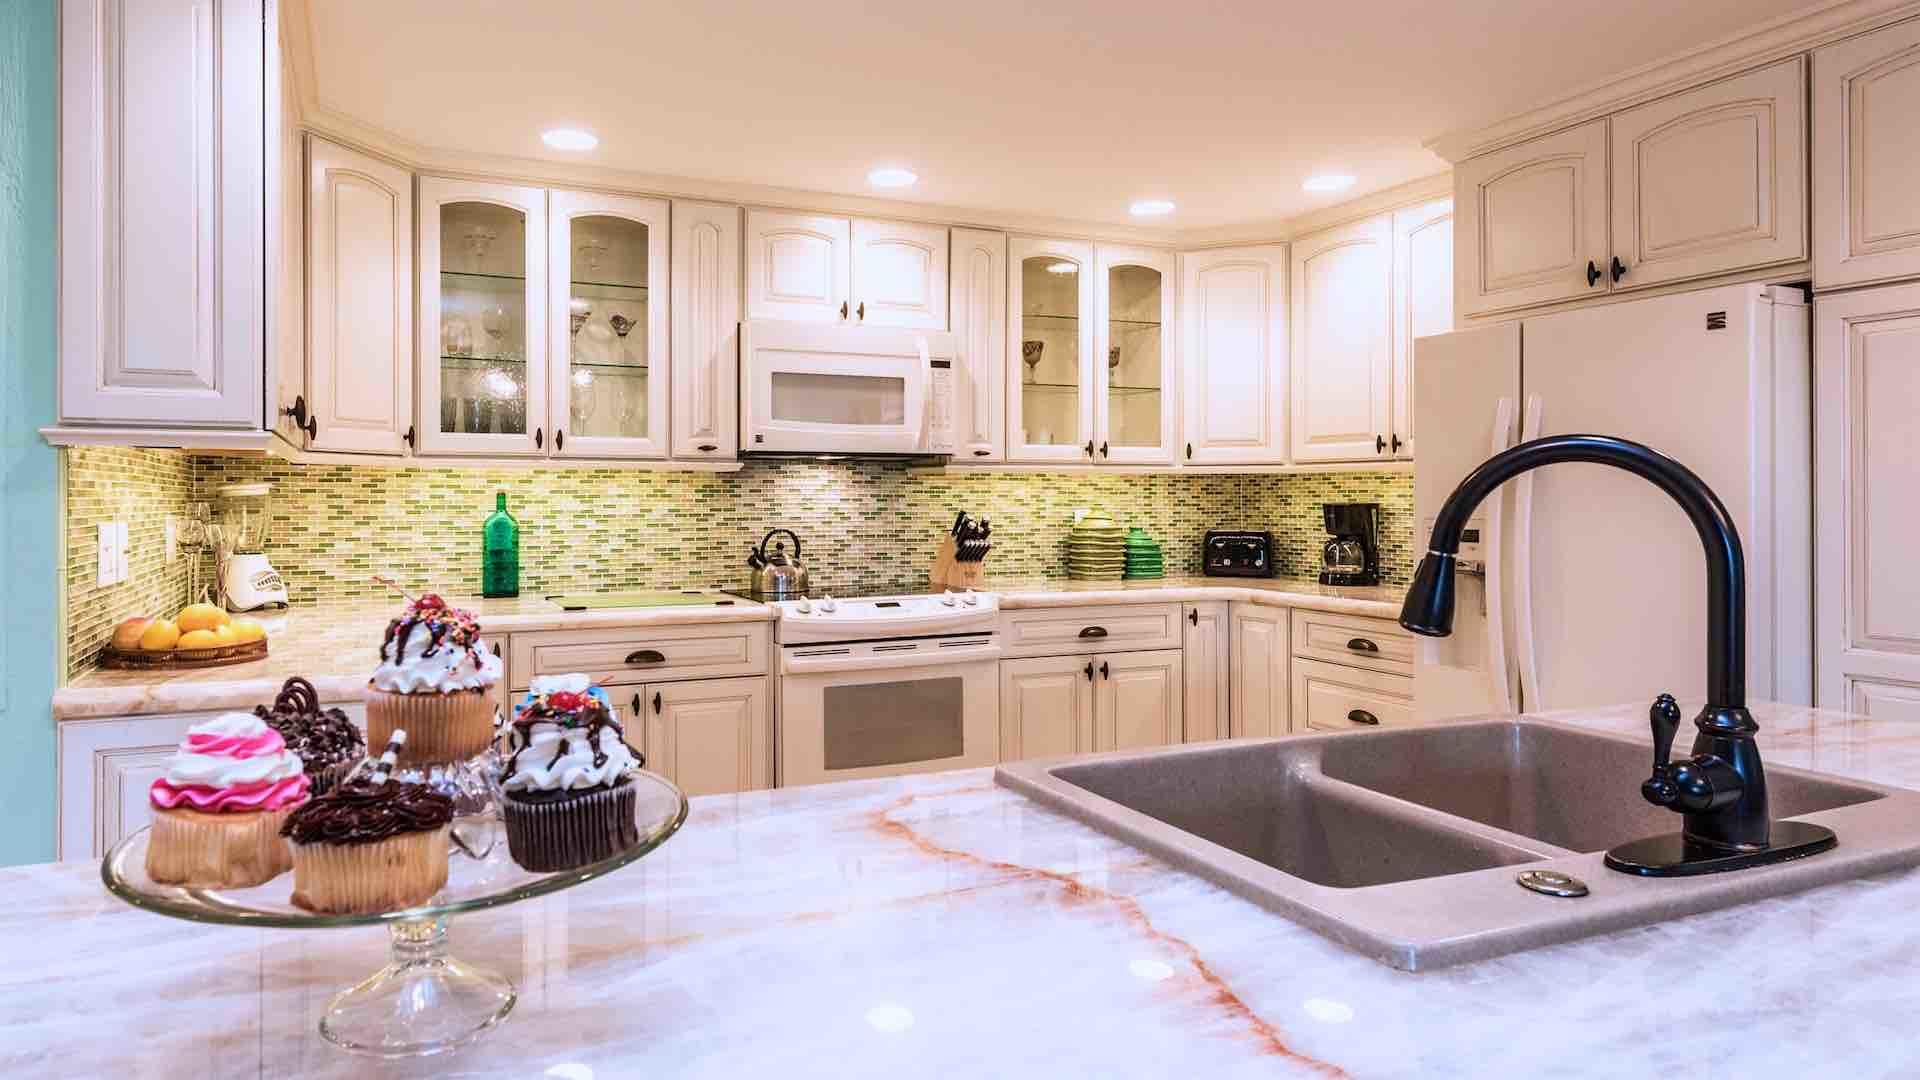 The kitchen has plenty of cabinet and countertop space...